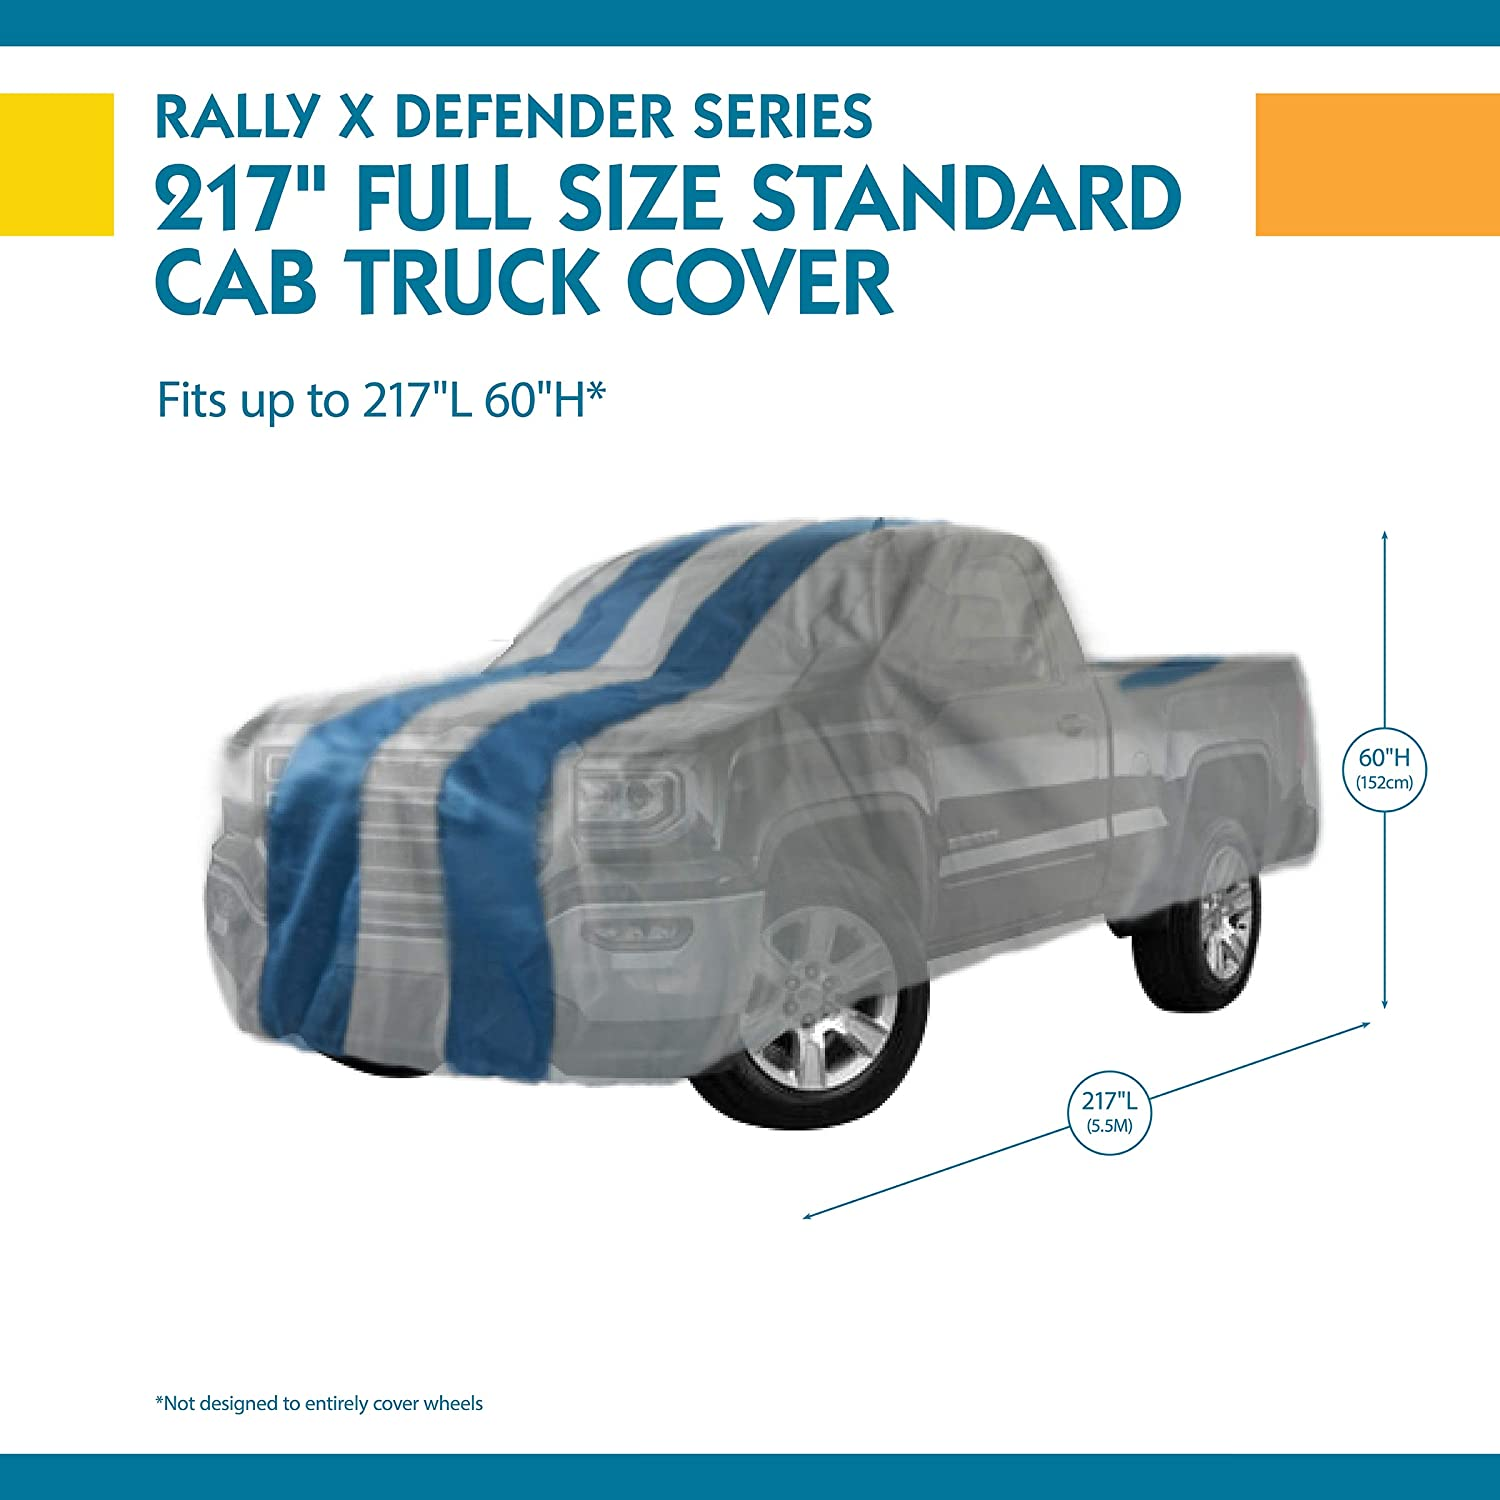 Duck Covers A4T210 Rally X Defender Grey with Navy Blue Rally Stripes 210L x 60W x 48H Pickup Truck Cover 1 Pack Fits Regular Cab Trucks up to 17 ft. 5 in. L